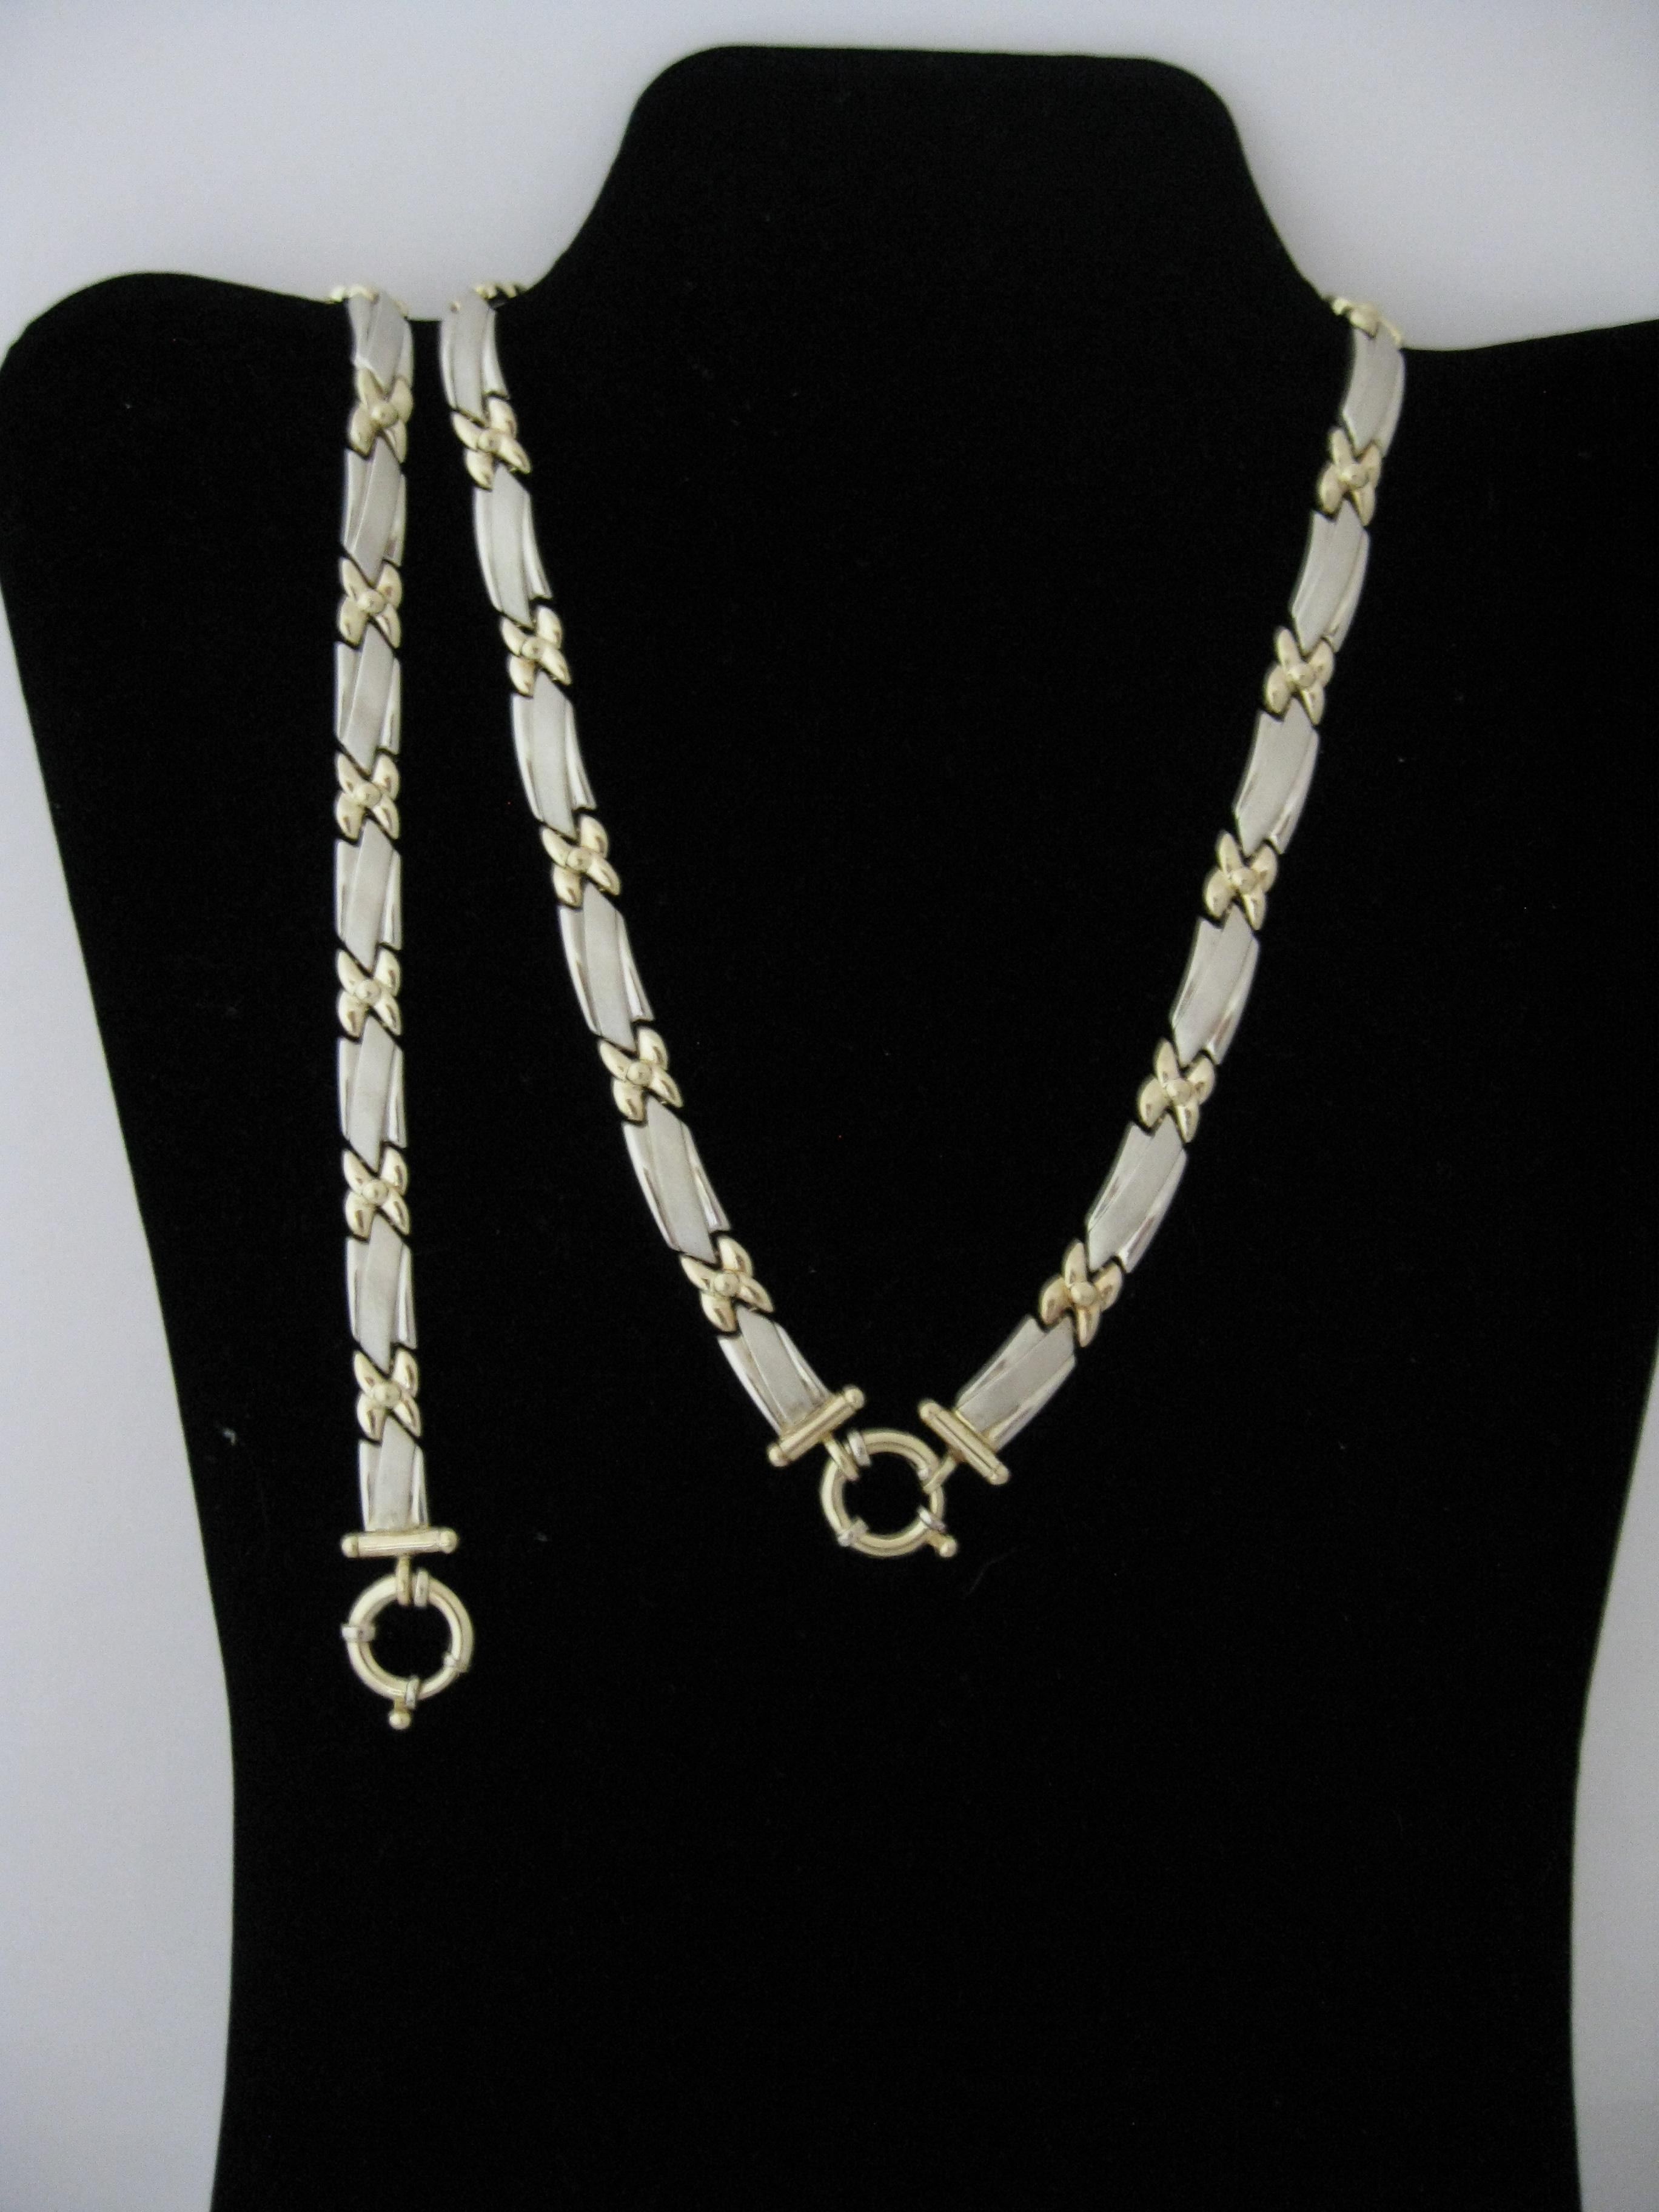 Solid 14 Karat Twotone White and Yellow Gold Necklace and Bracelet